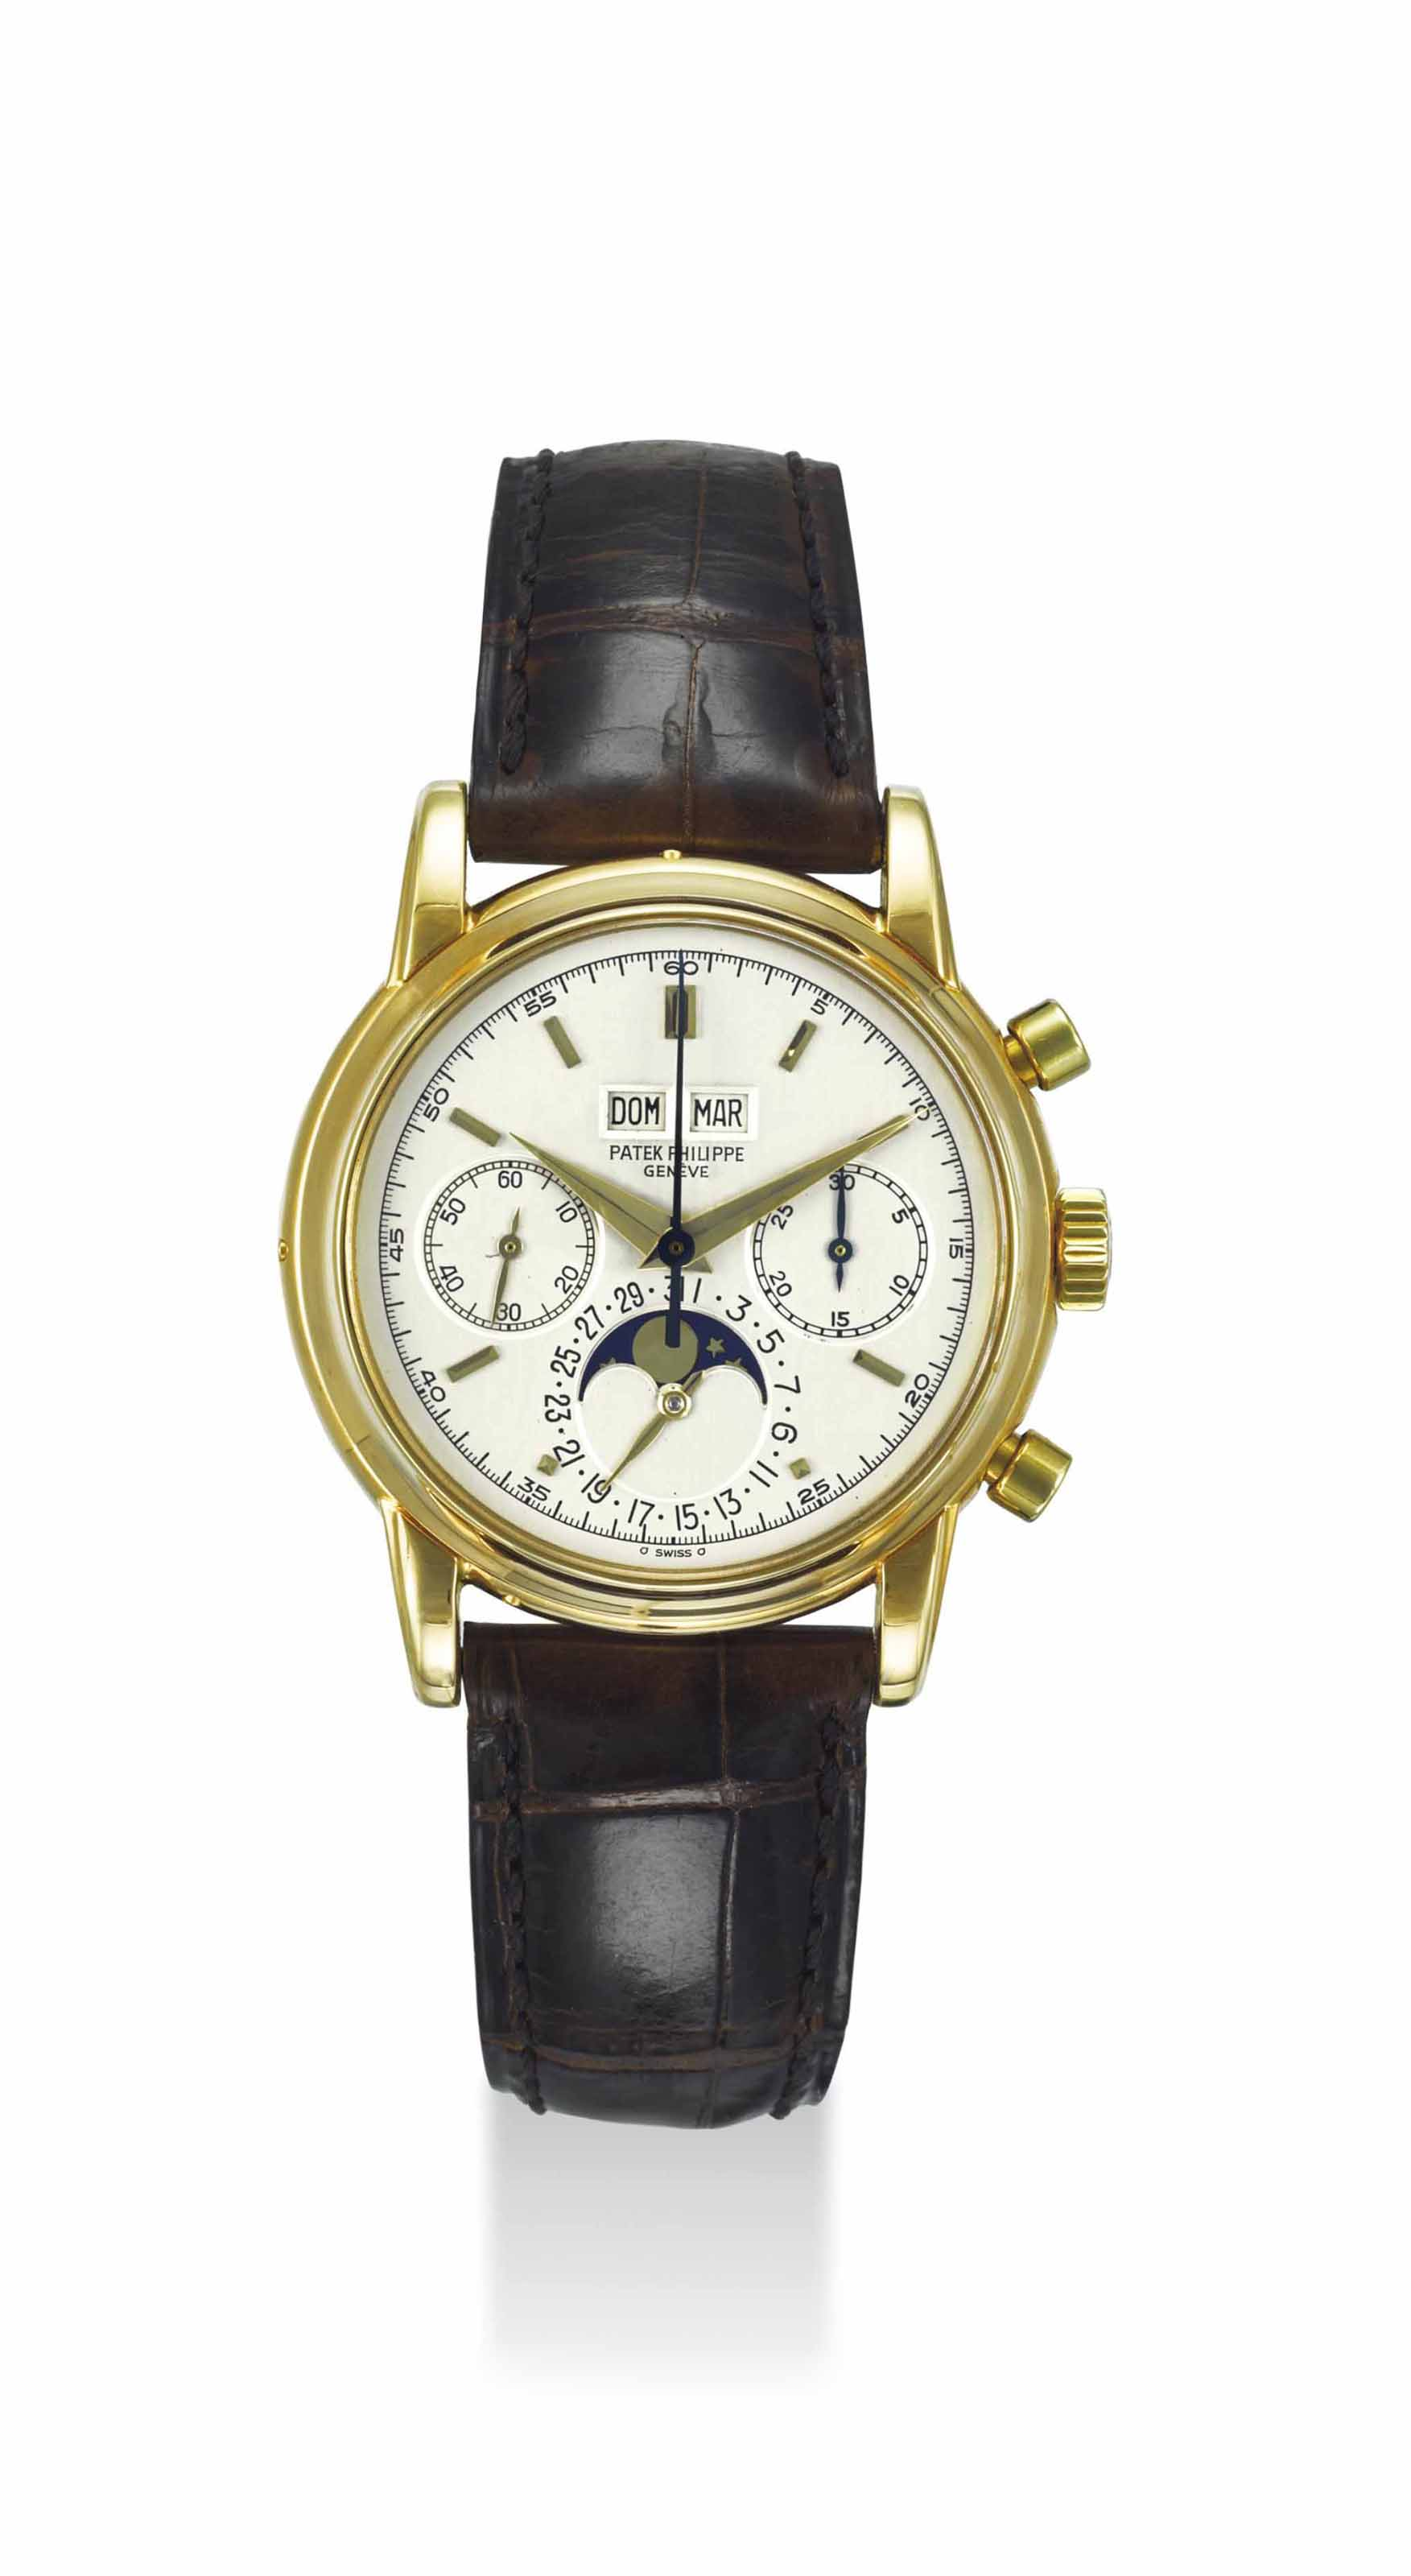 Patek philippe an extremely fine and rare 18k gold perpetual calendar chronograph wristwatch for Patek philippe geneve